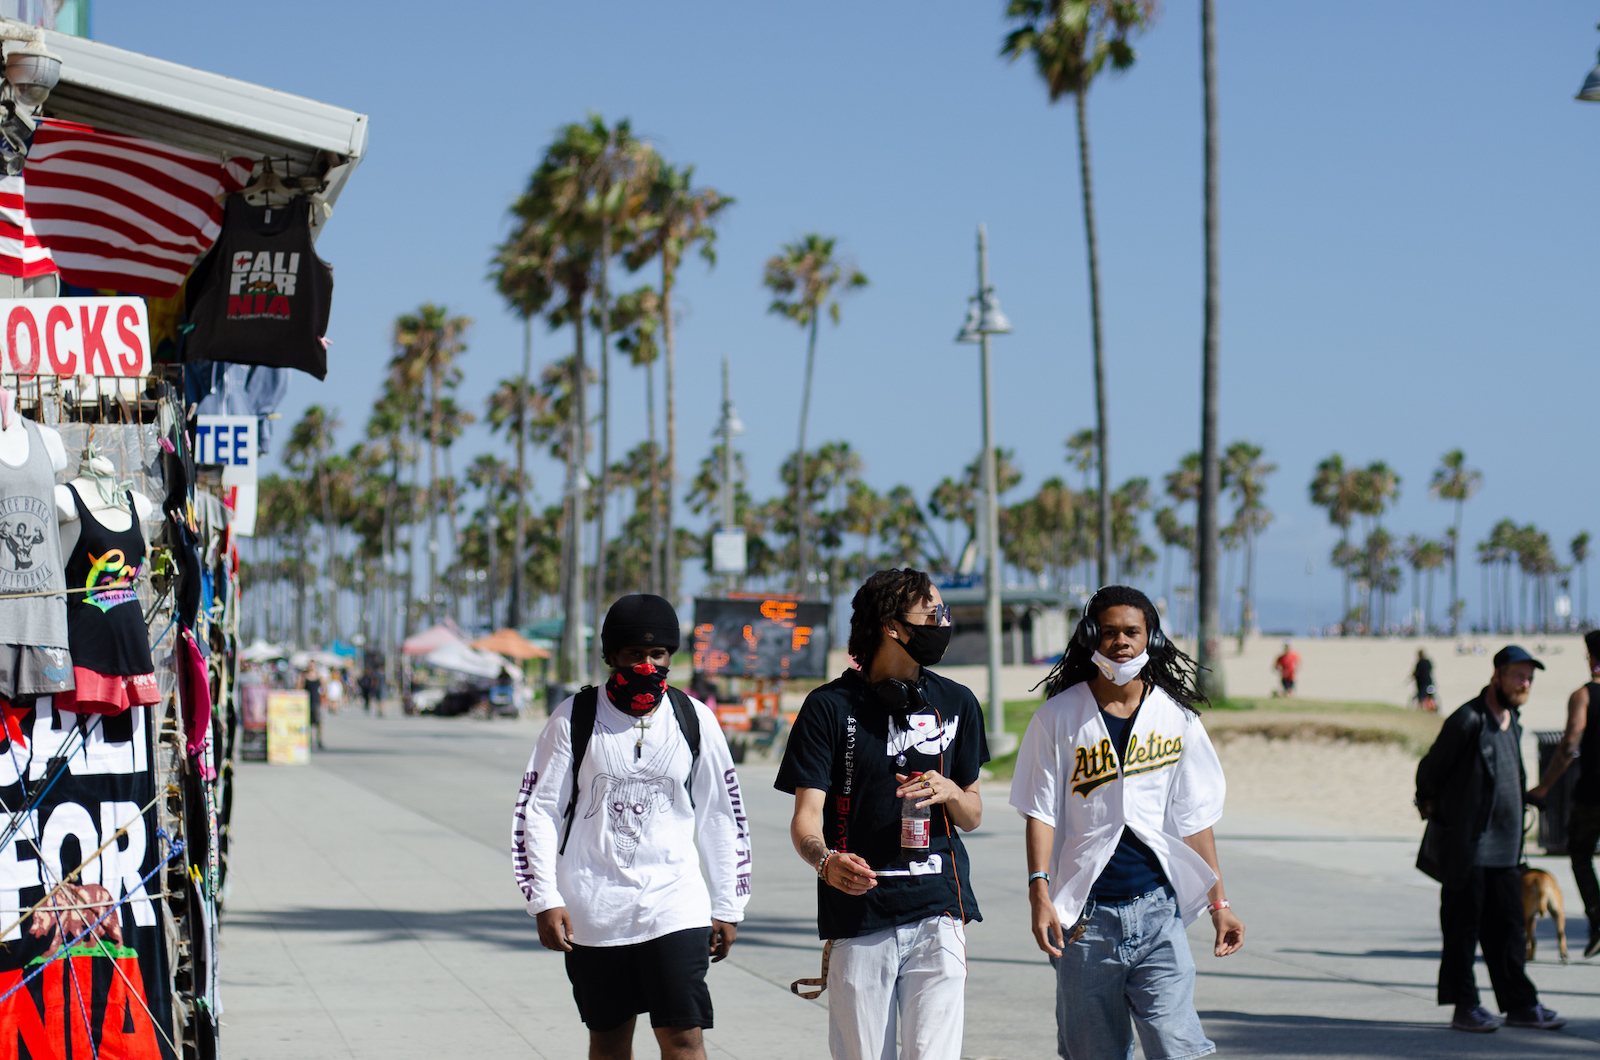 LA County Beaches Will Be Closed Over 4th of July Weekend